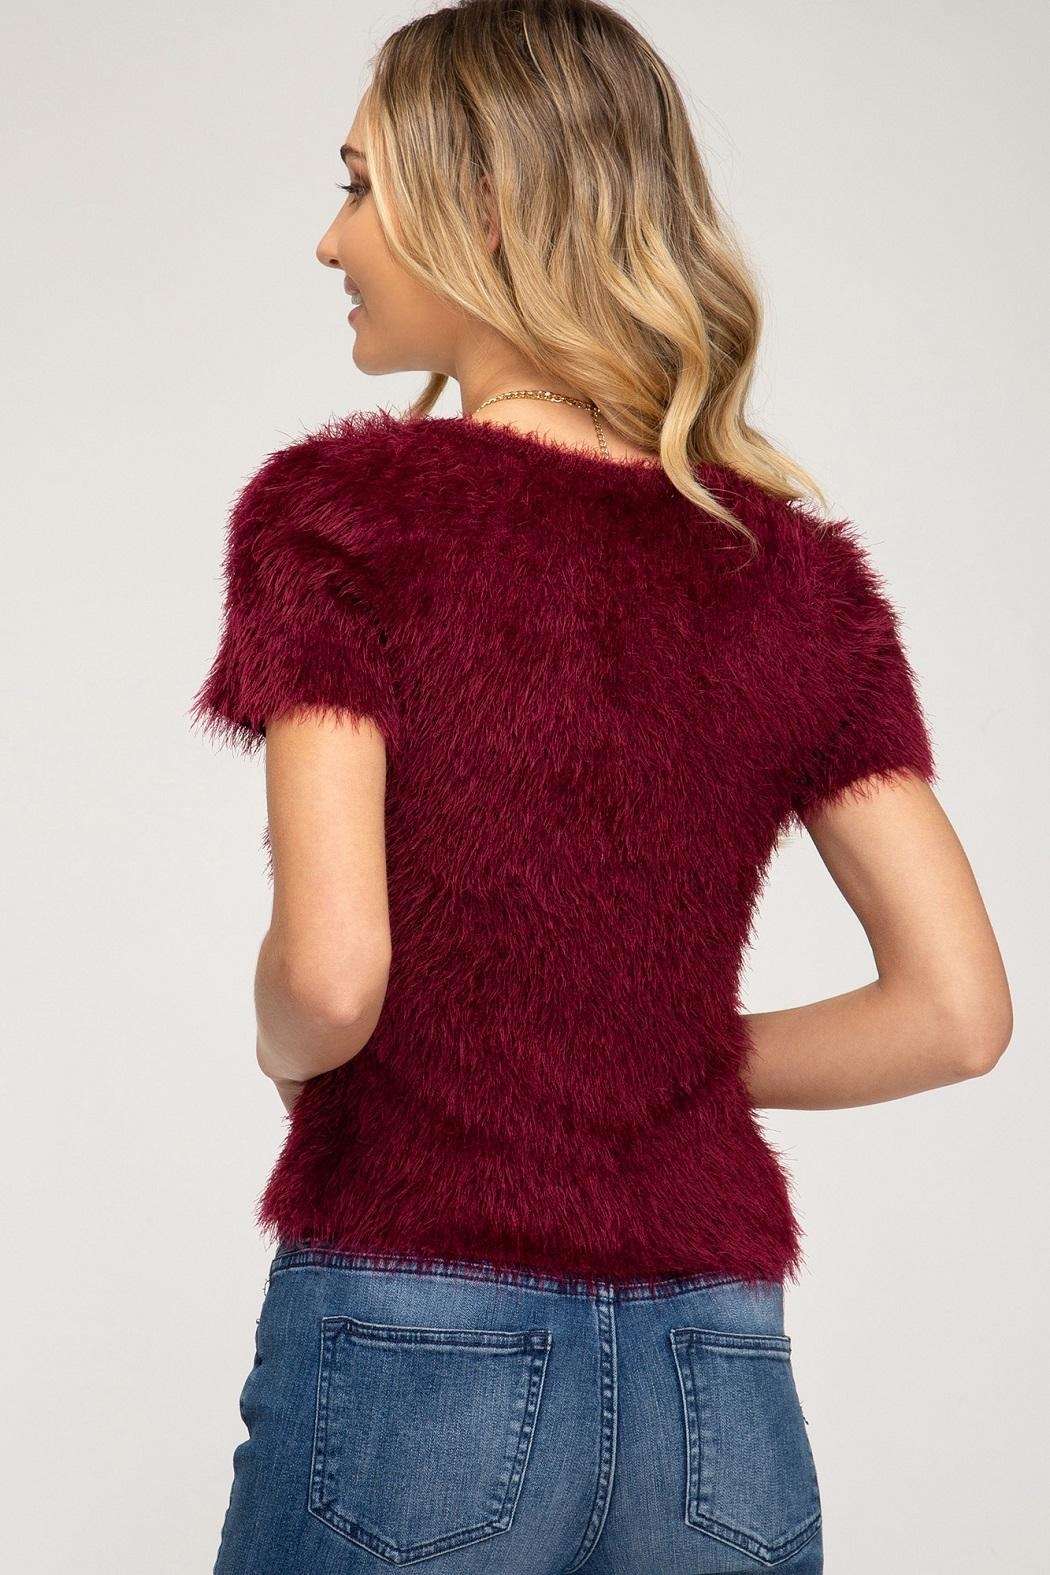 She + Sky Ivy Sweater Wine - Front Full Image